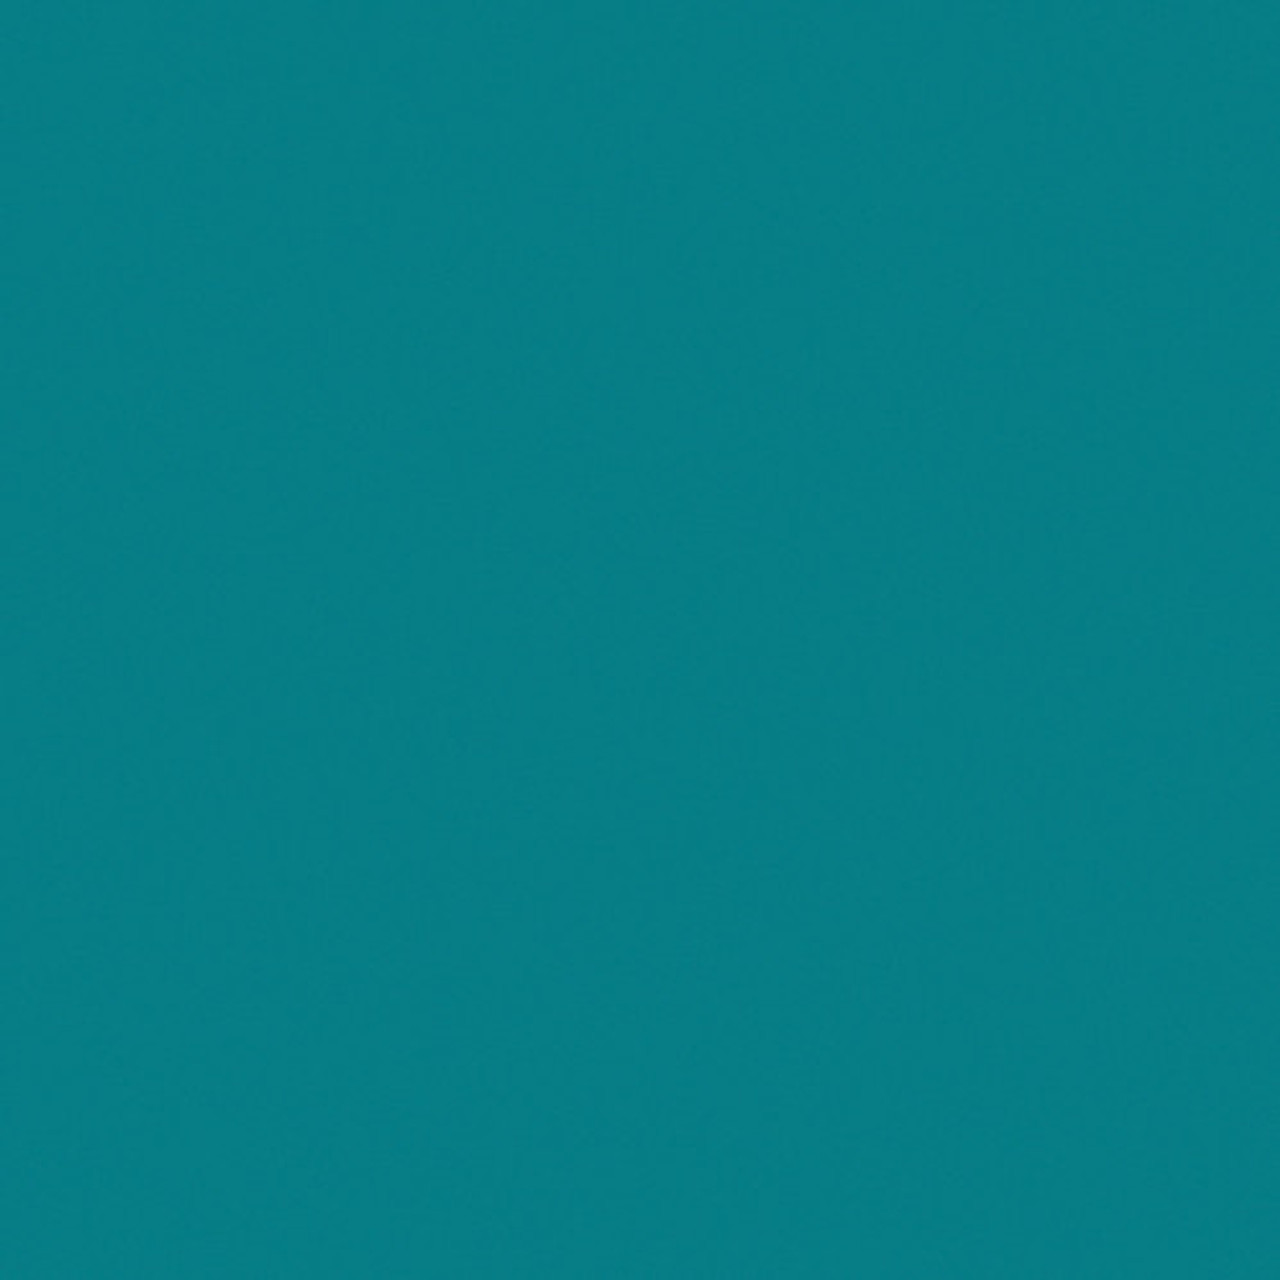 #0093 Rosco Gels Roscolux Blue Green, 20x24""